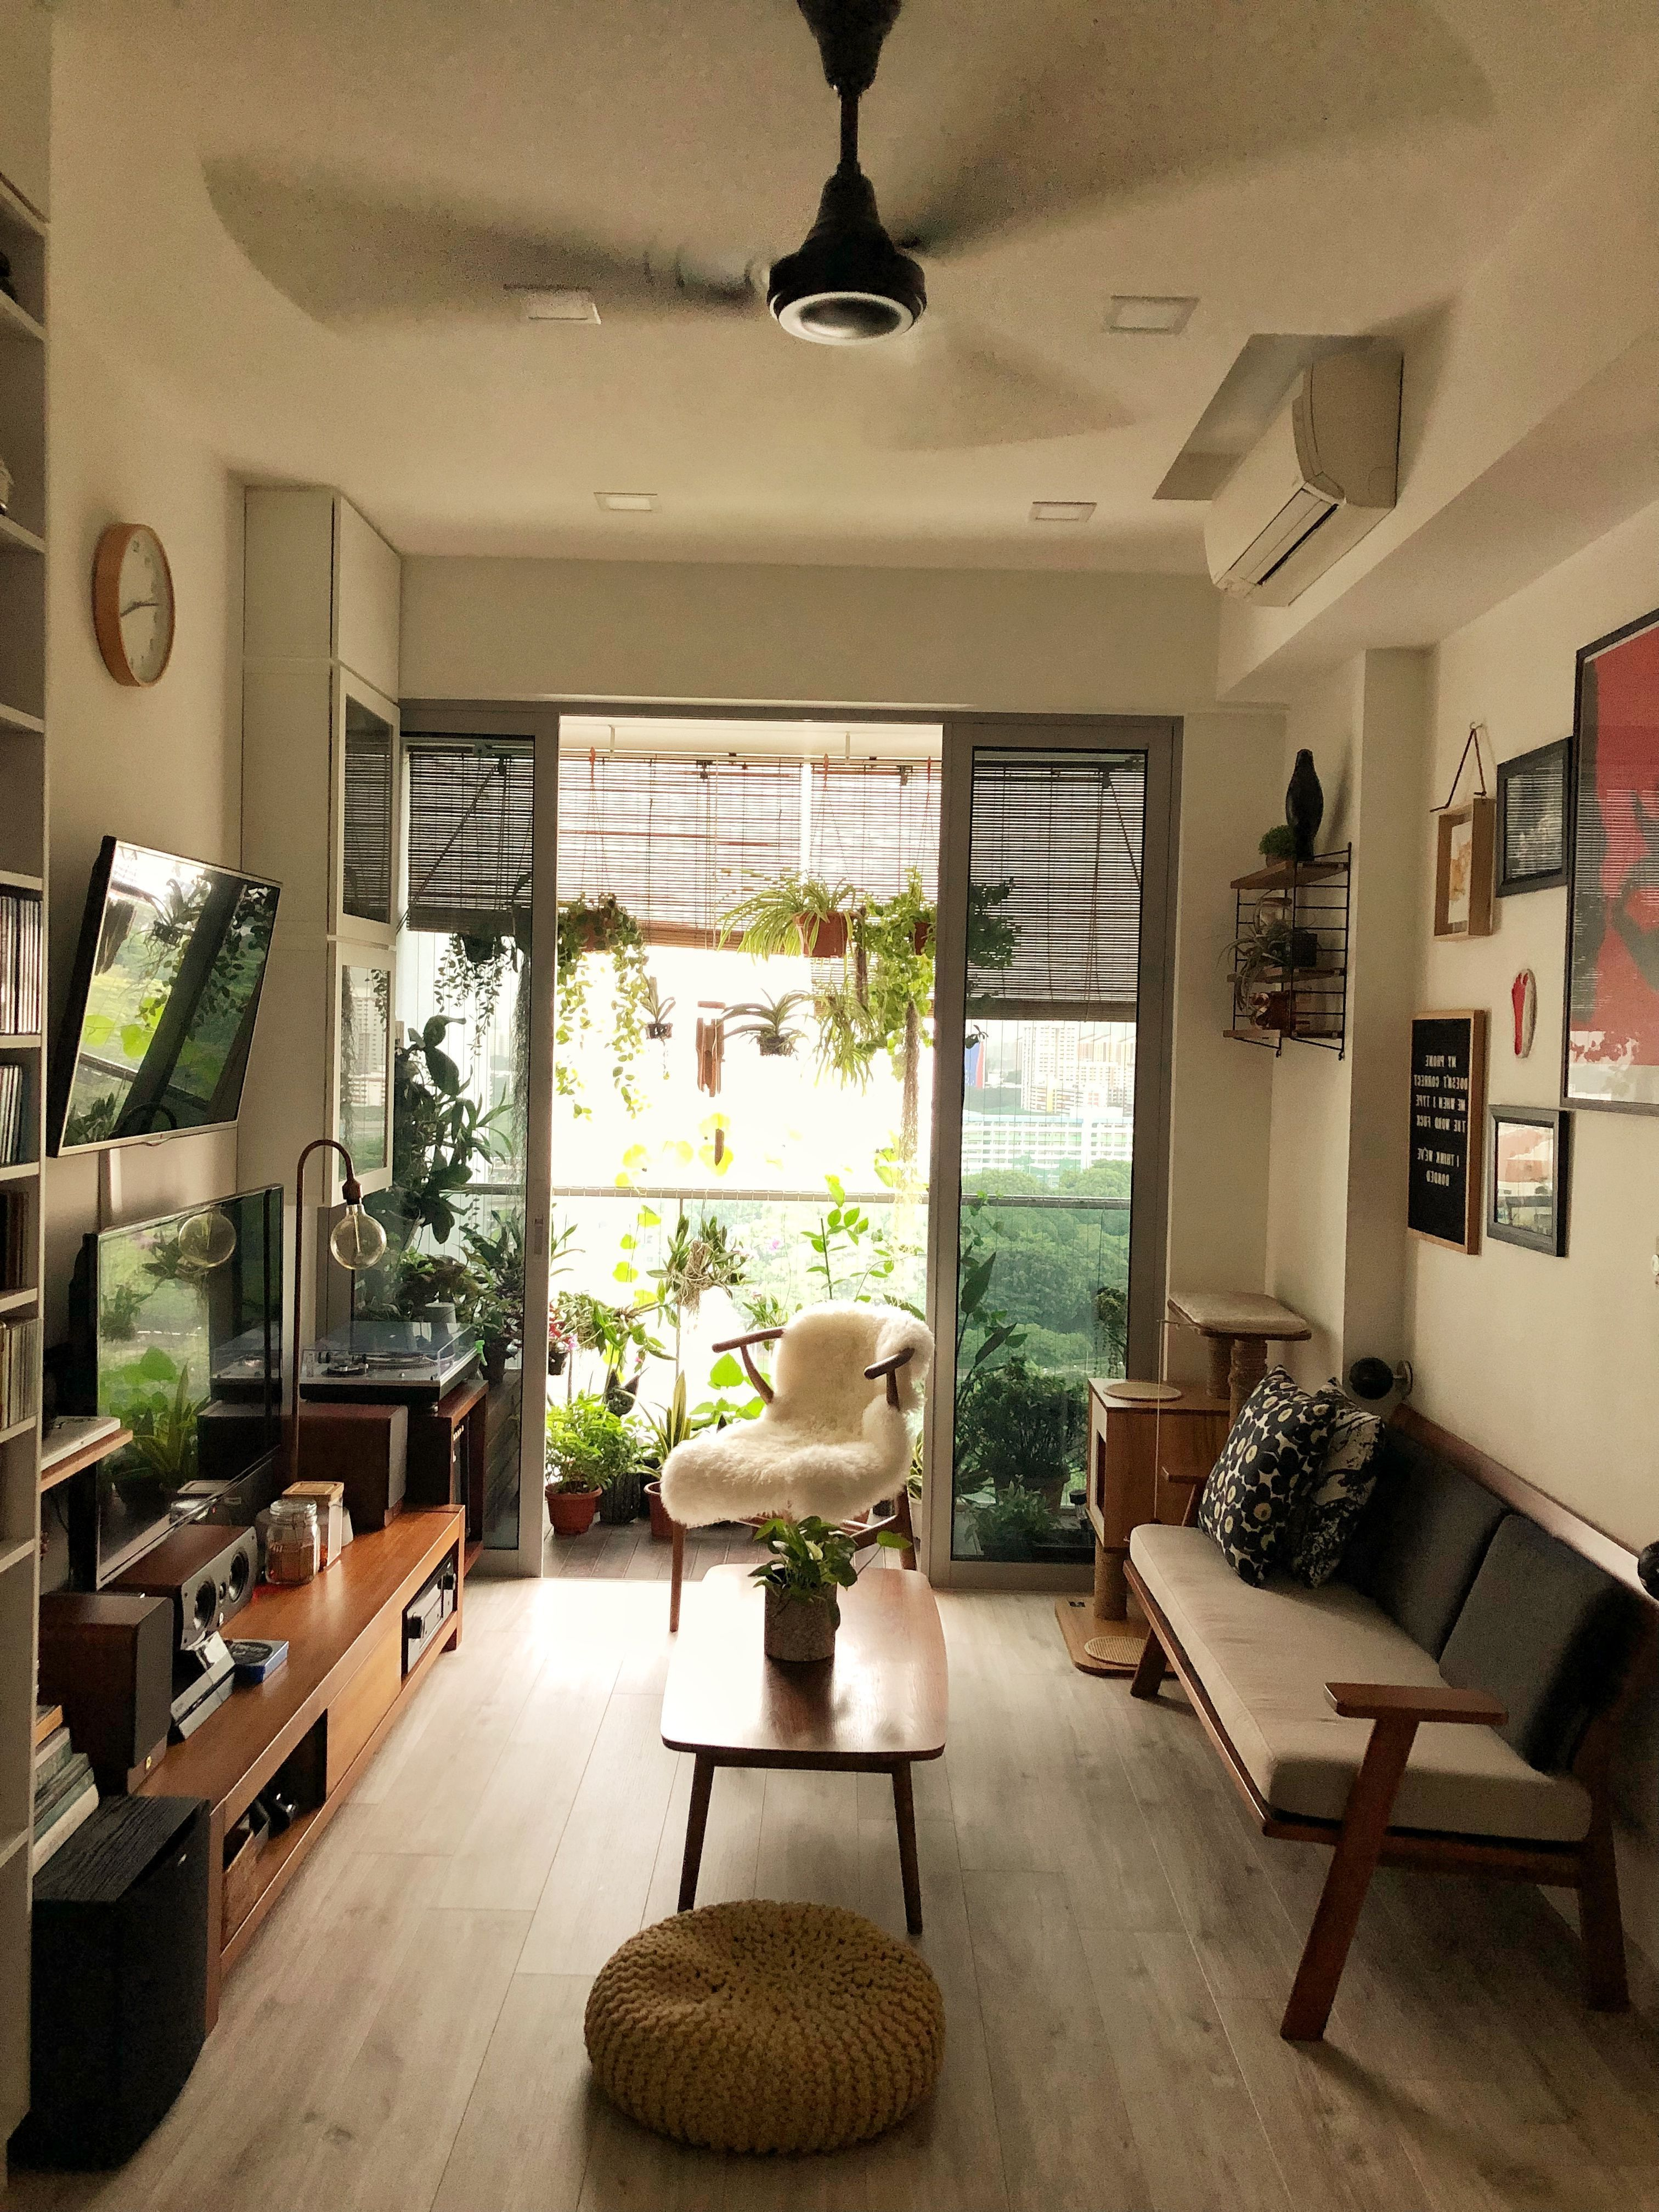 Living Room Japanese Decorating Ideas Living Room Japanesedecoratingideaslivingro In 2020 Small House Interior Small House Interior Design Japanese Living Rooms